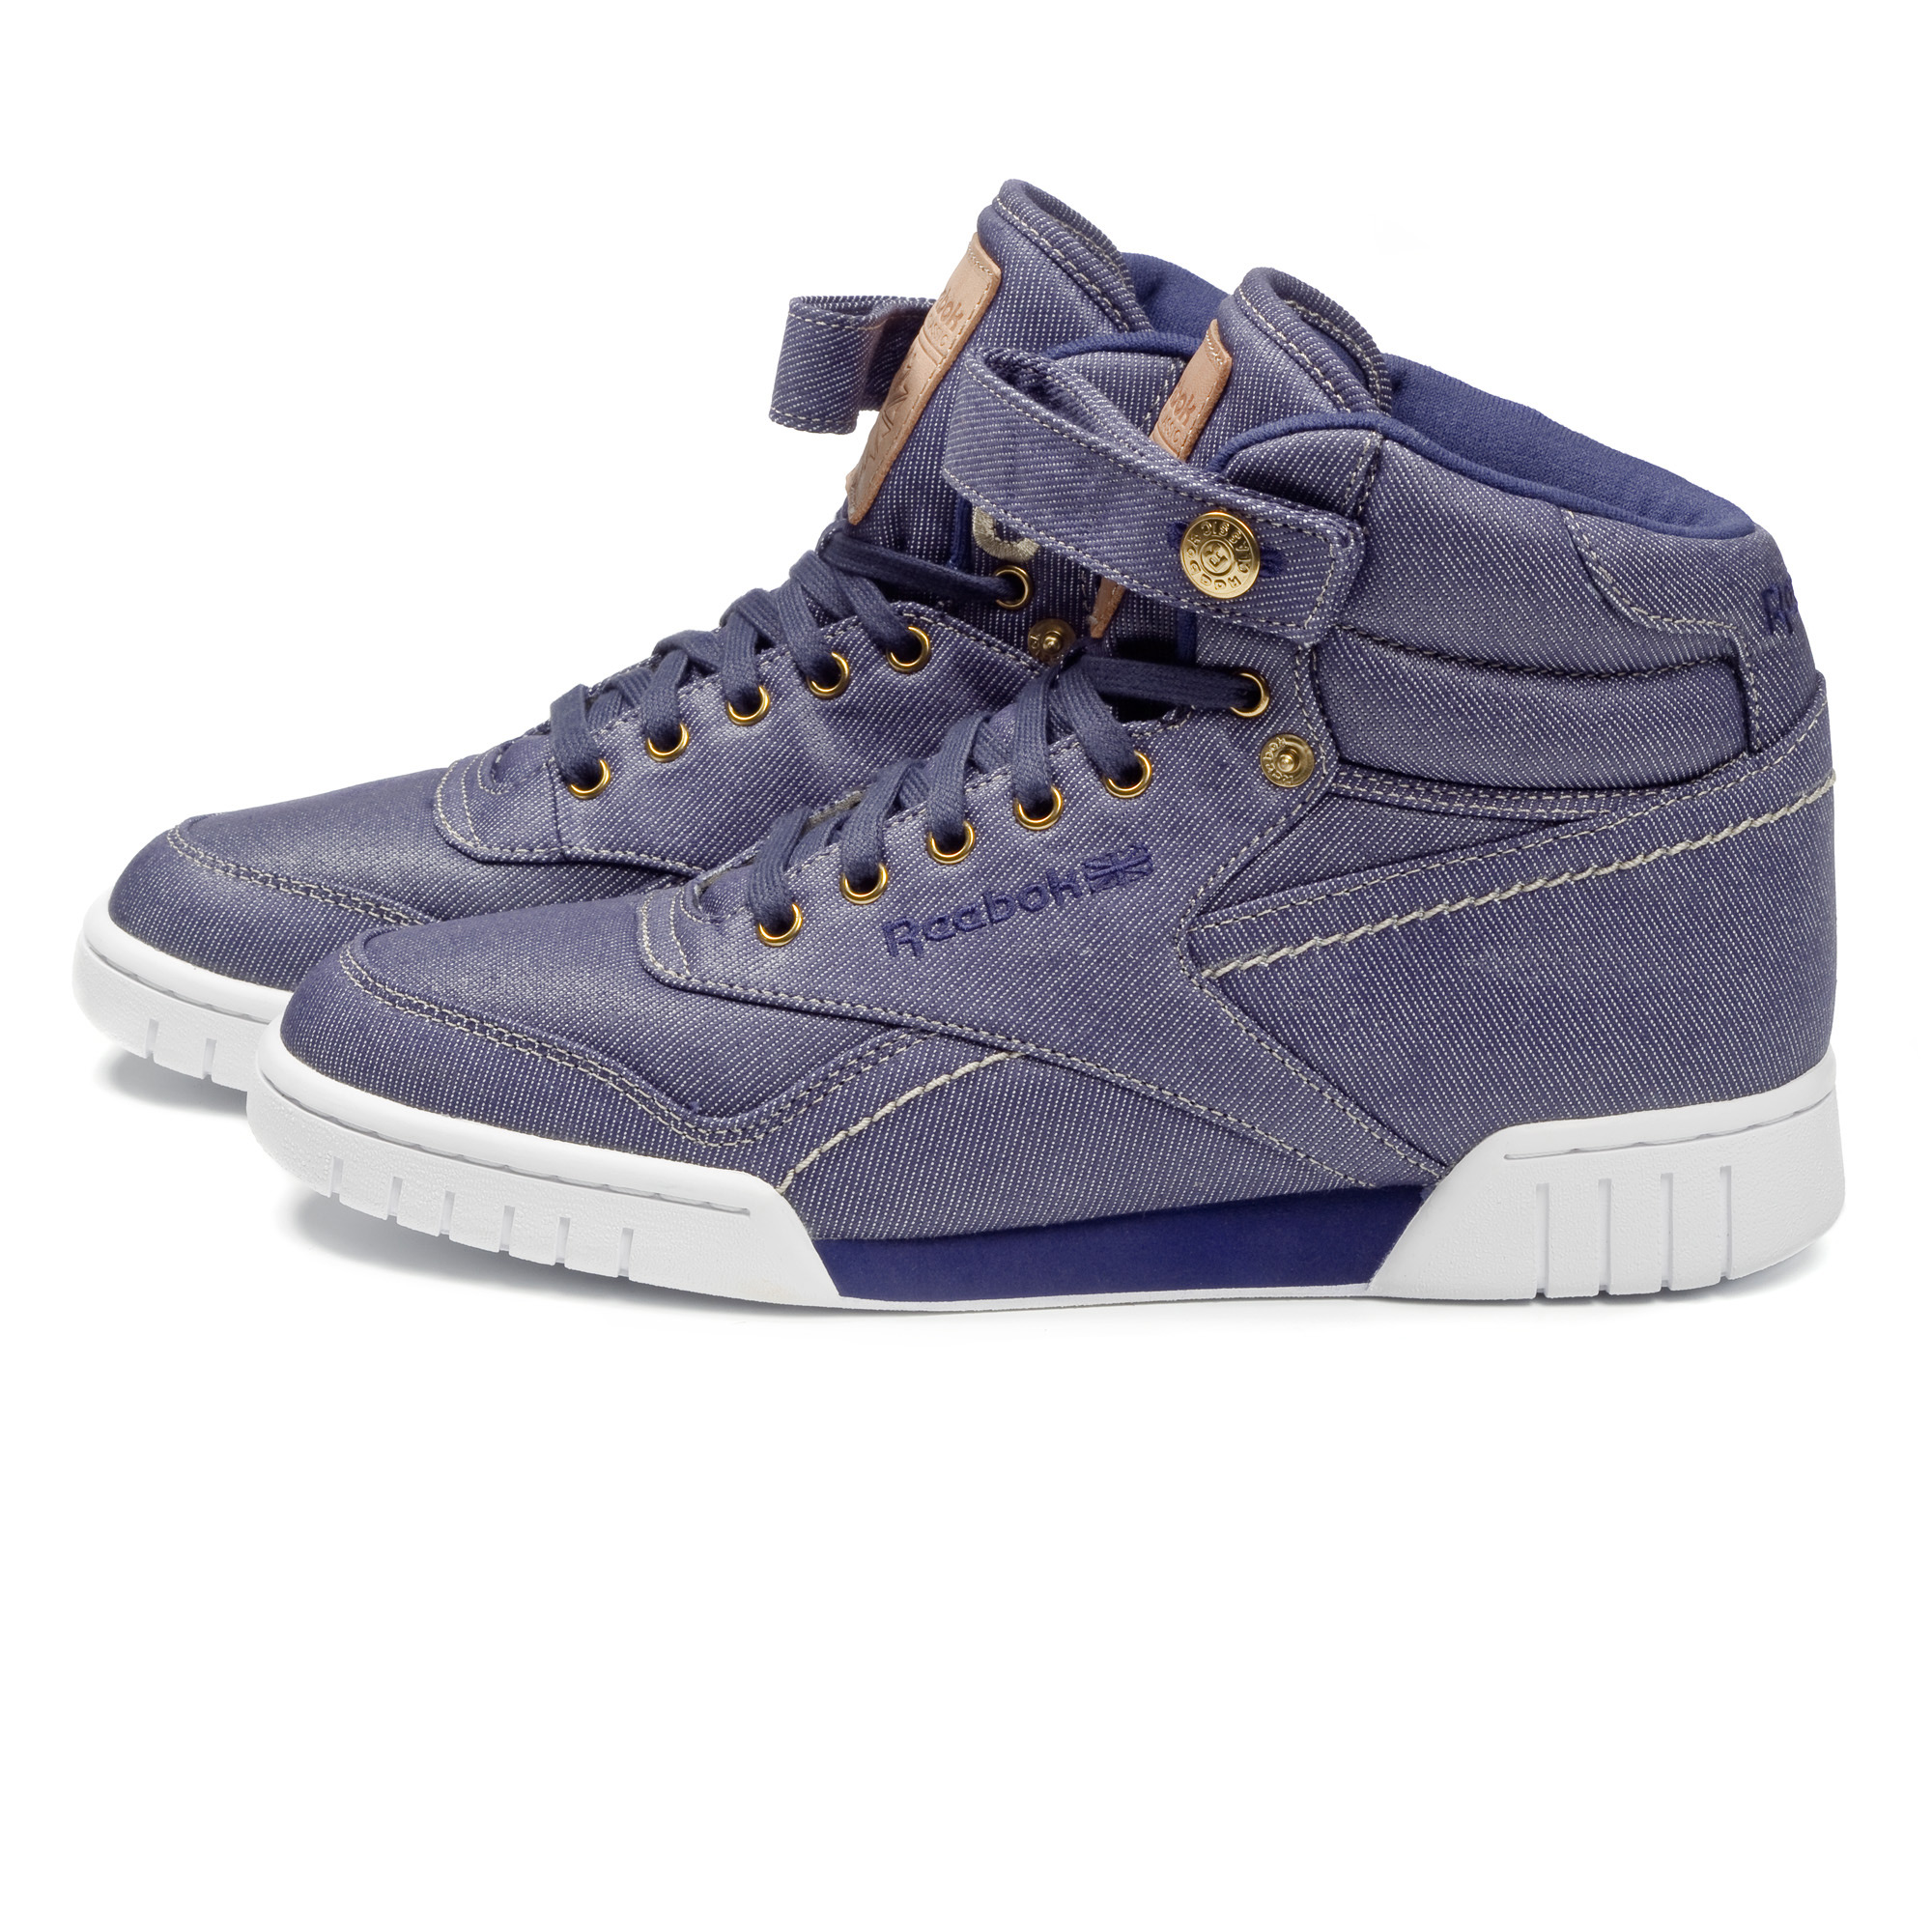 Reebok Ex-O-Fit Denim Disponible sur Reebok.fr  0c9686de7a89